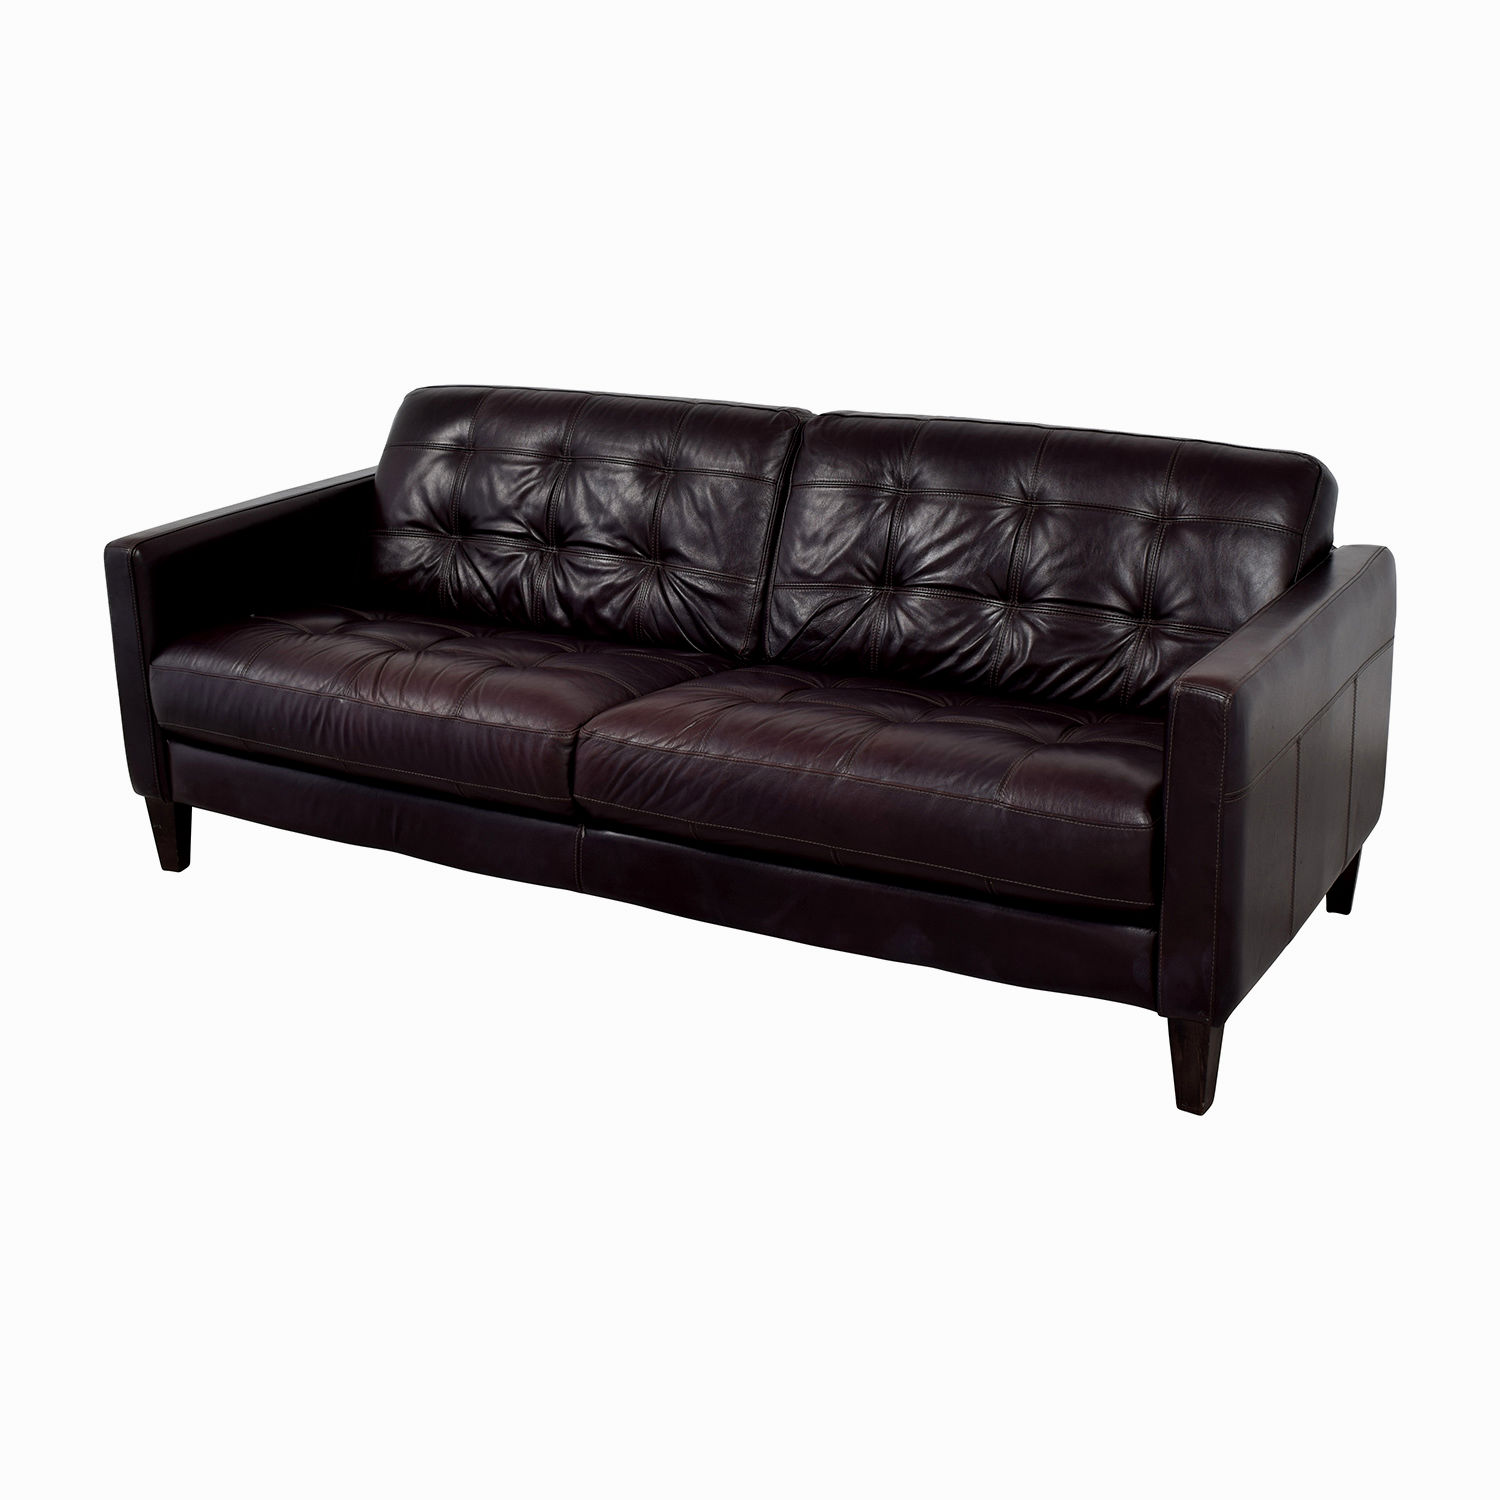 fresh milan leather sofa online-Contemporary Milan Leather sofa Layout